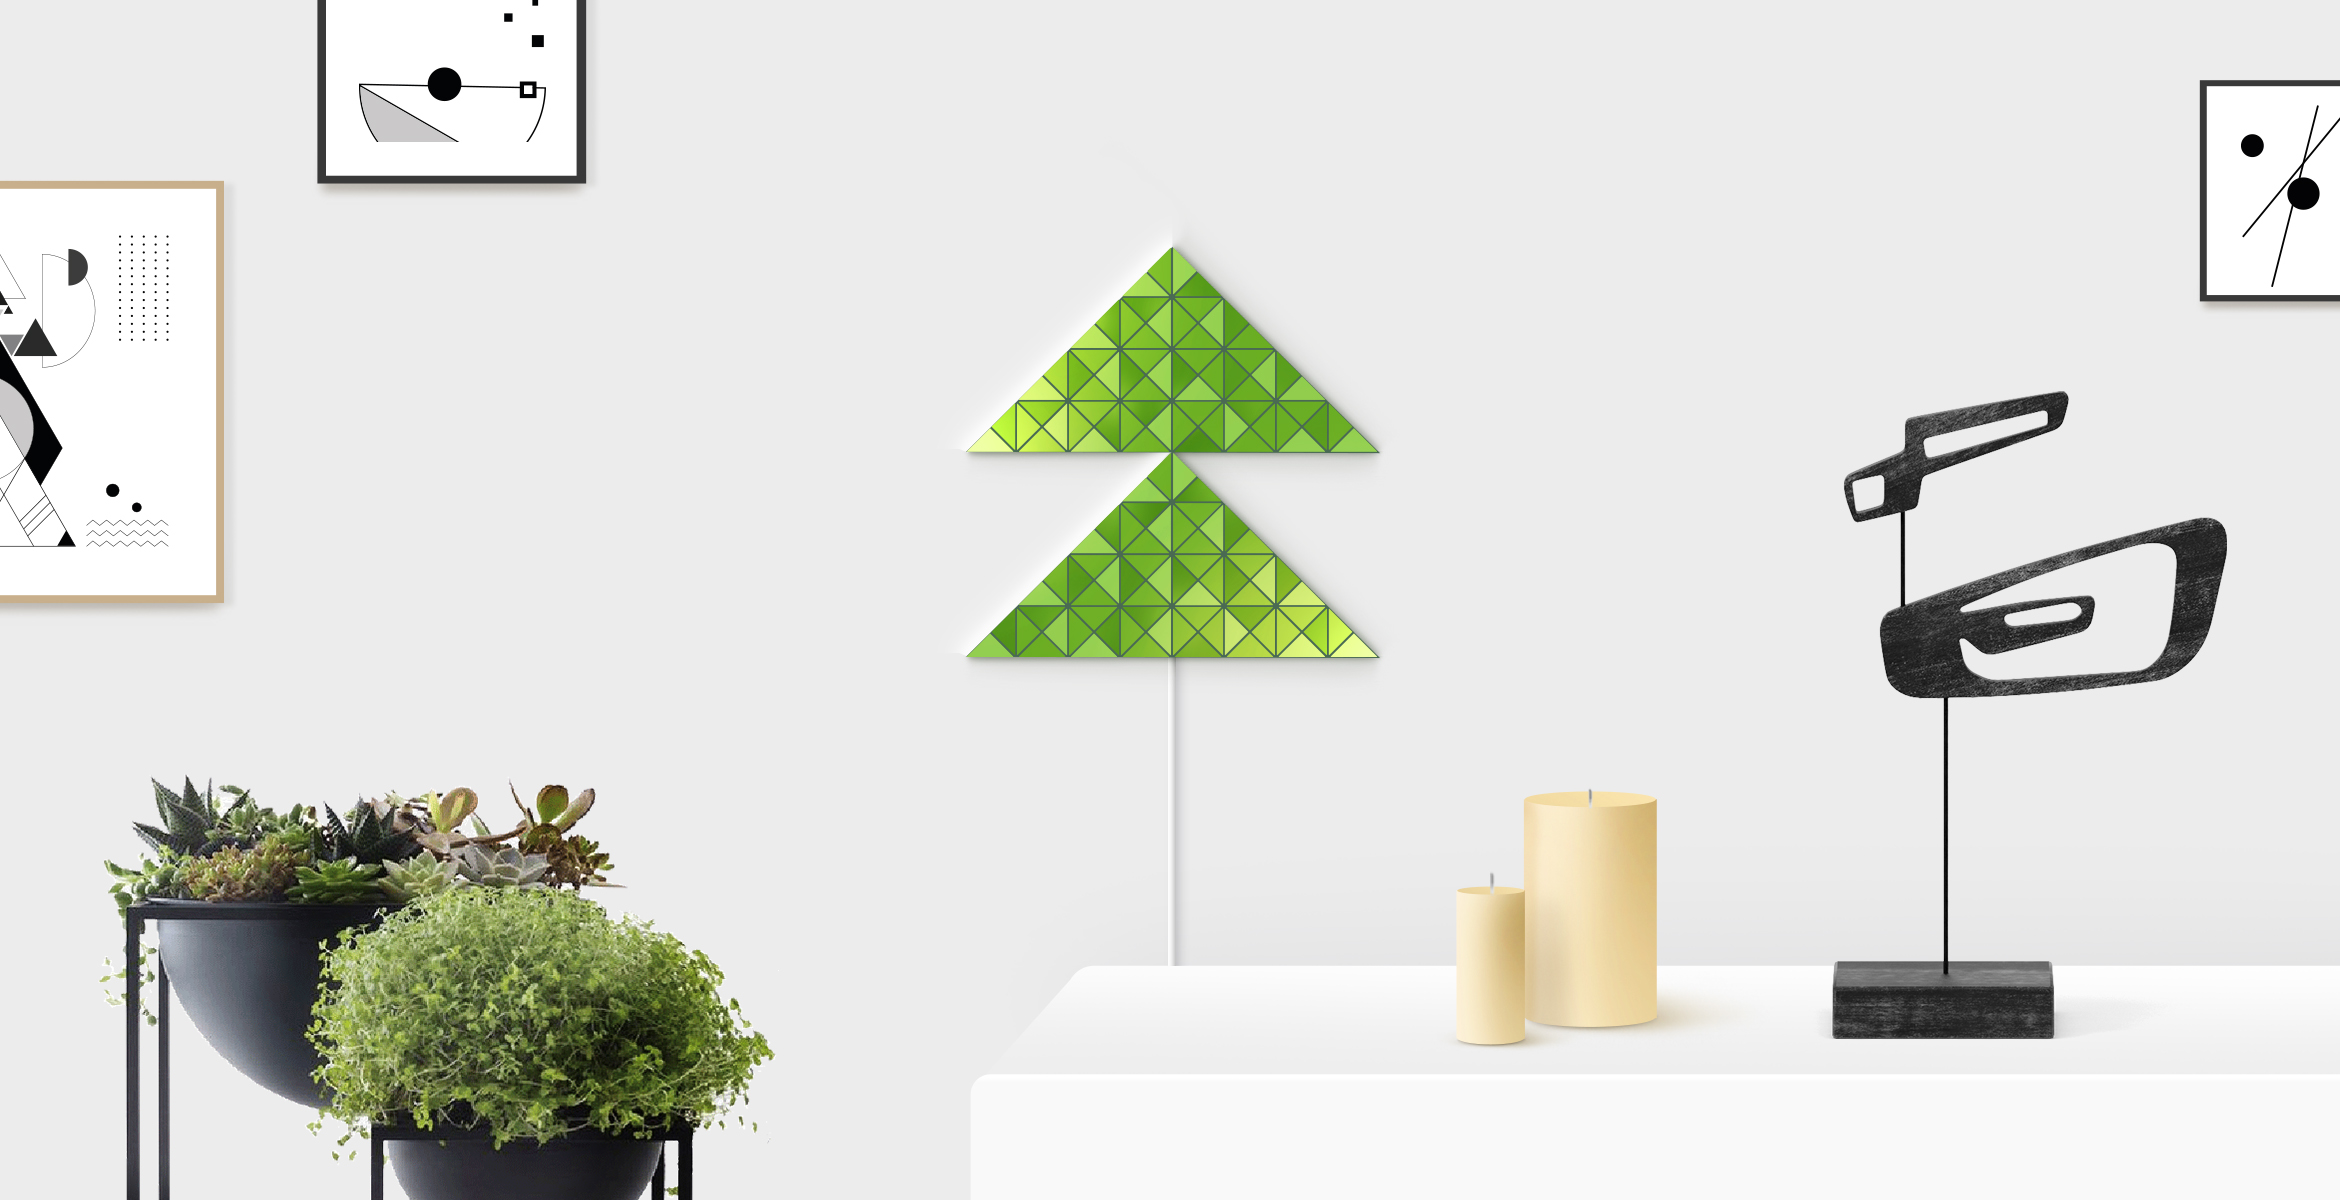 Small fir tree shape in green color, assembled from 2 LaMetric SKY smart light surfaces, placed in a stylish living room